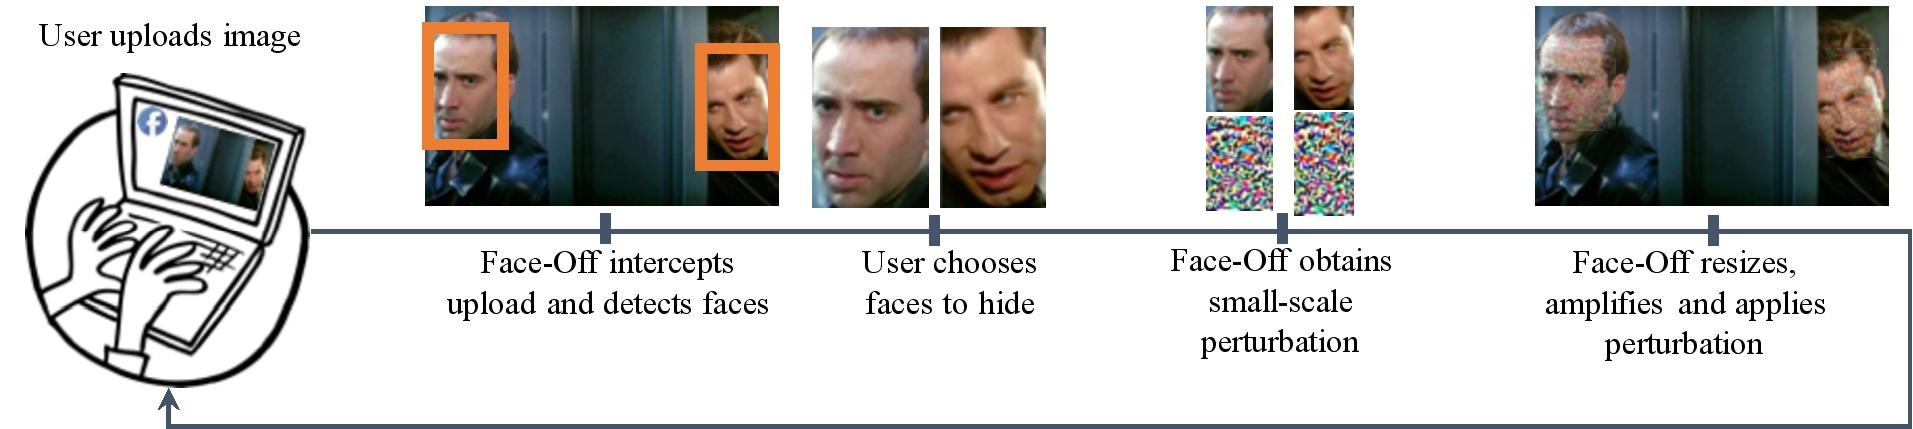 A high-level overview of Face-Off's system.